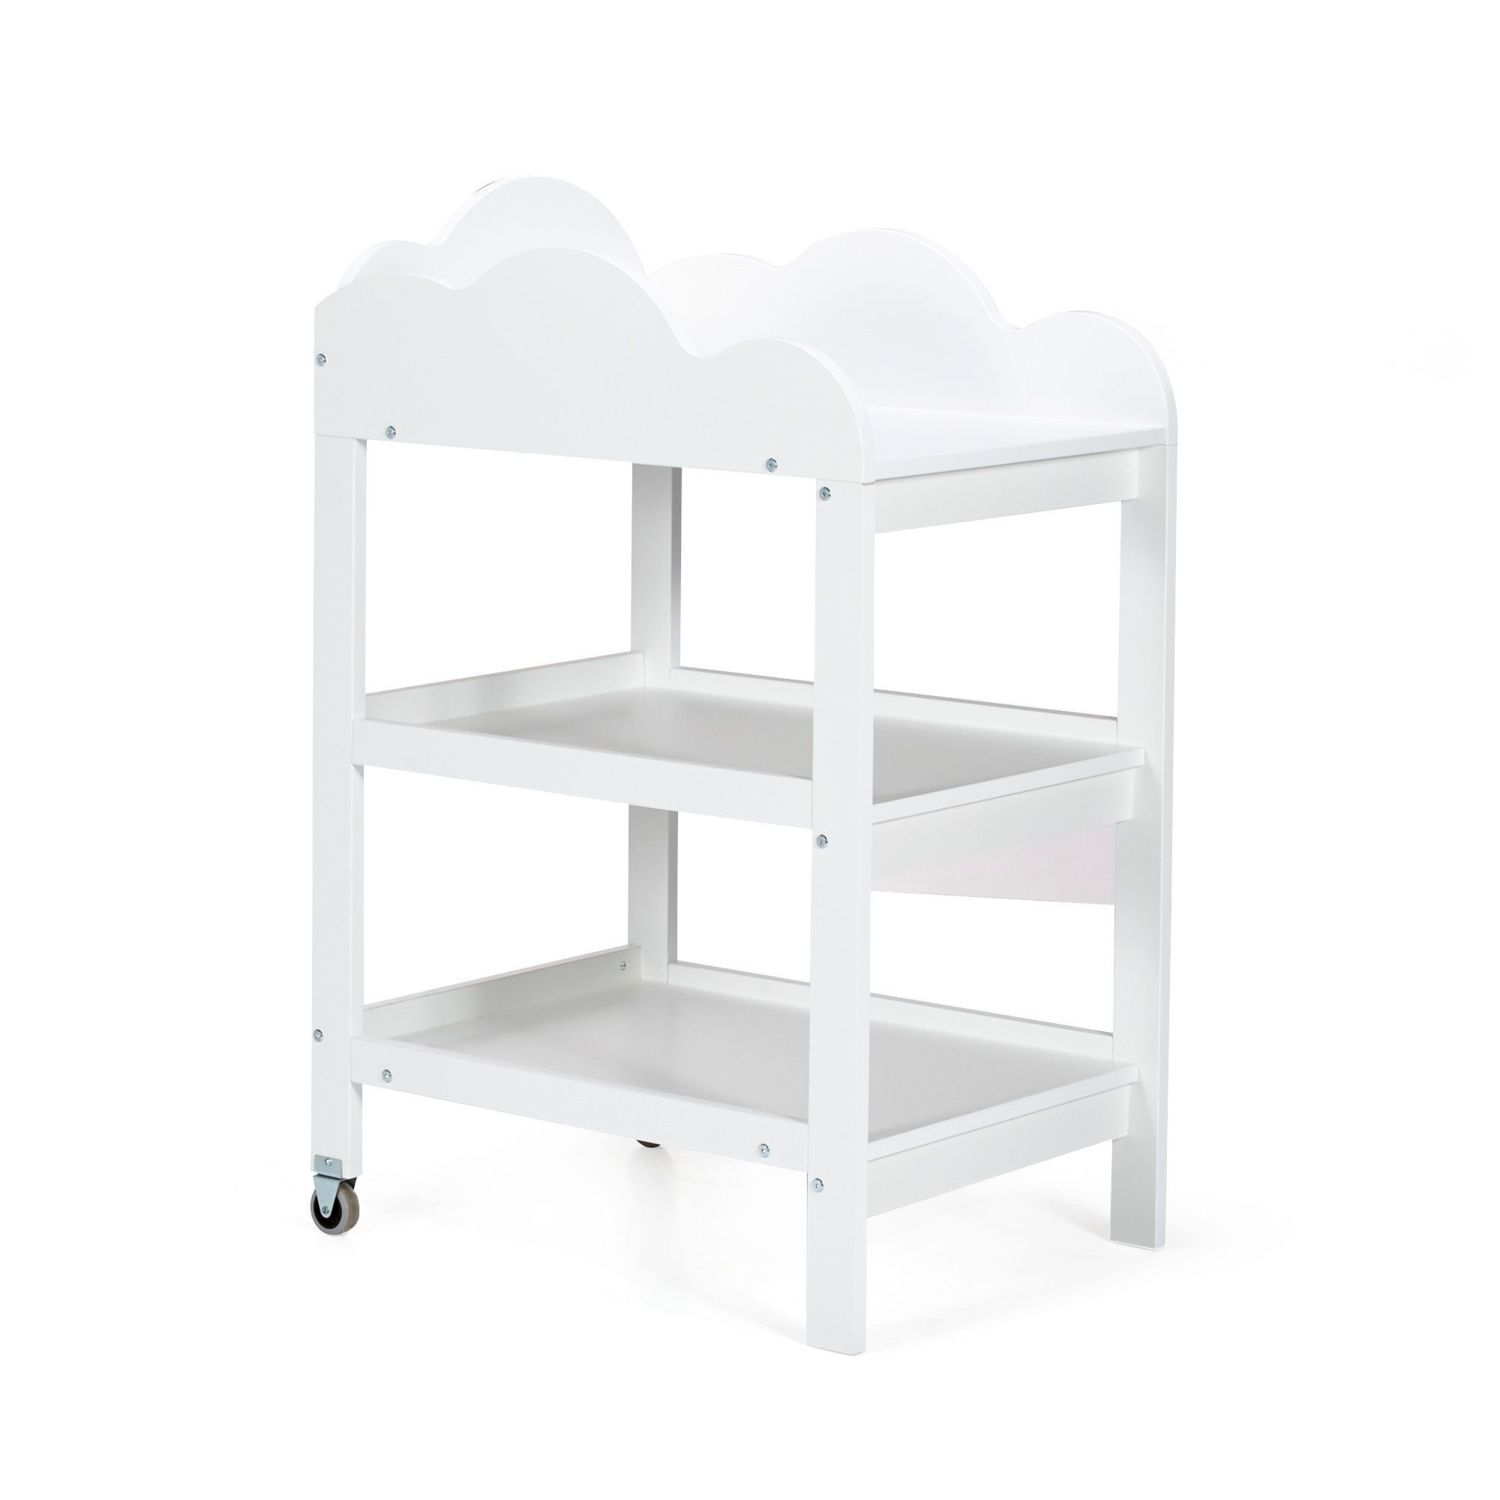 Etagere Nuage Ikea Alinea Etagere Blanche Latest Related Article With